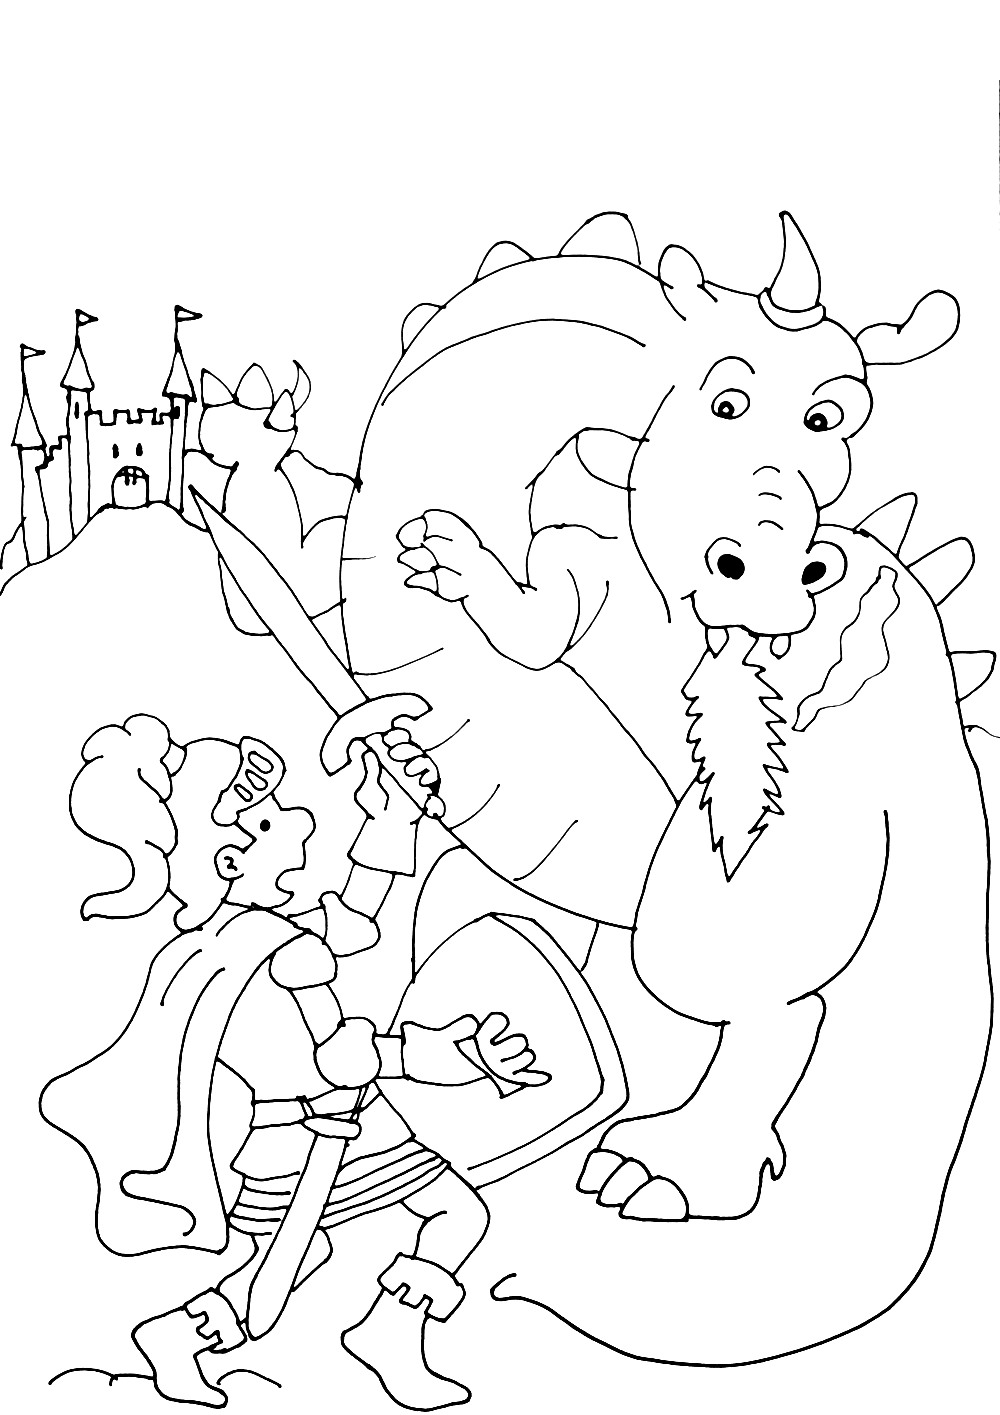 Knights And Dragons coloring page to print and color